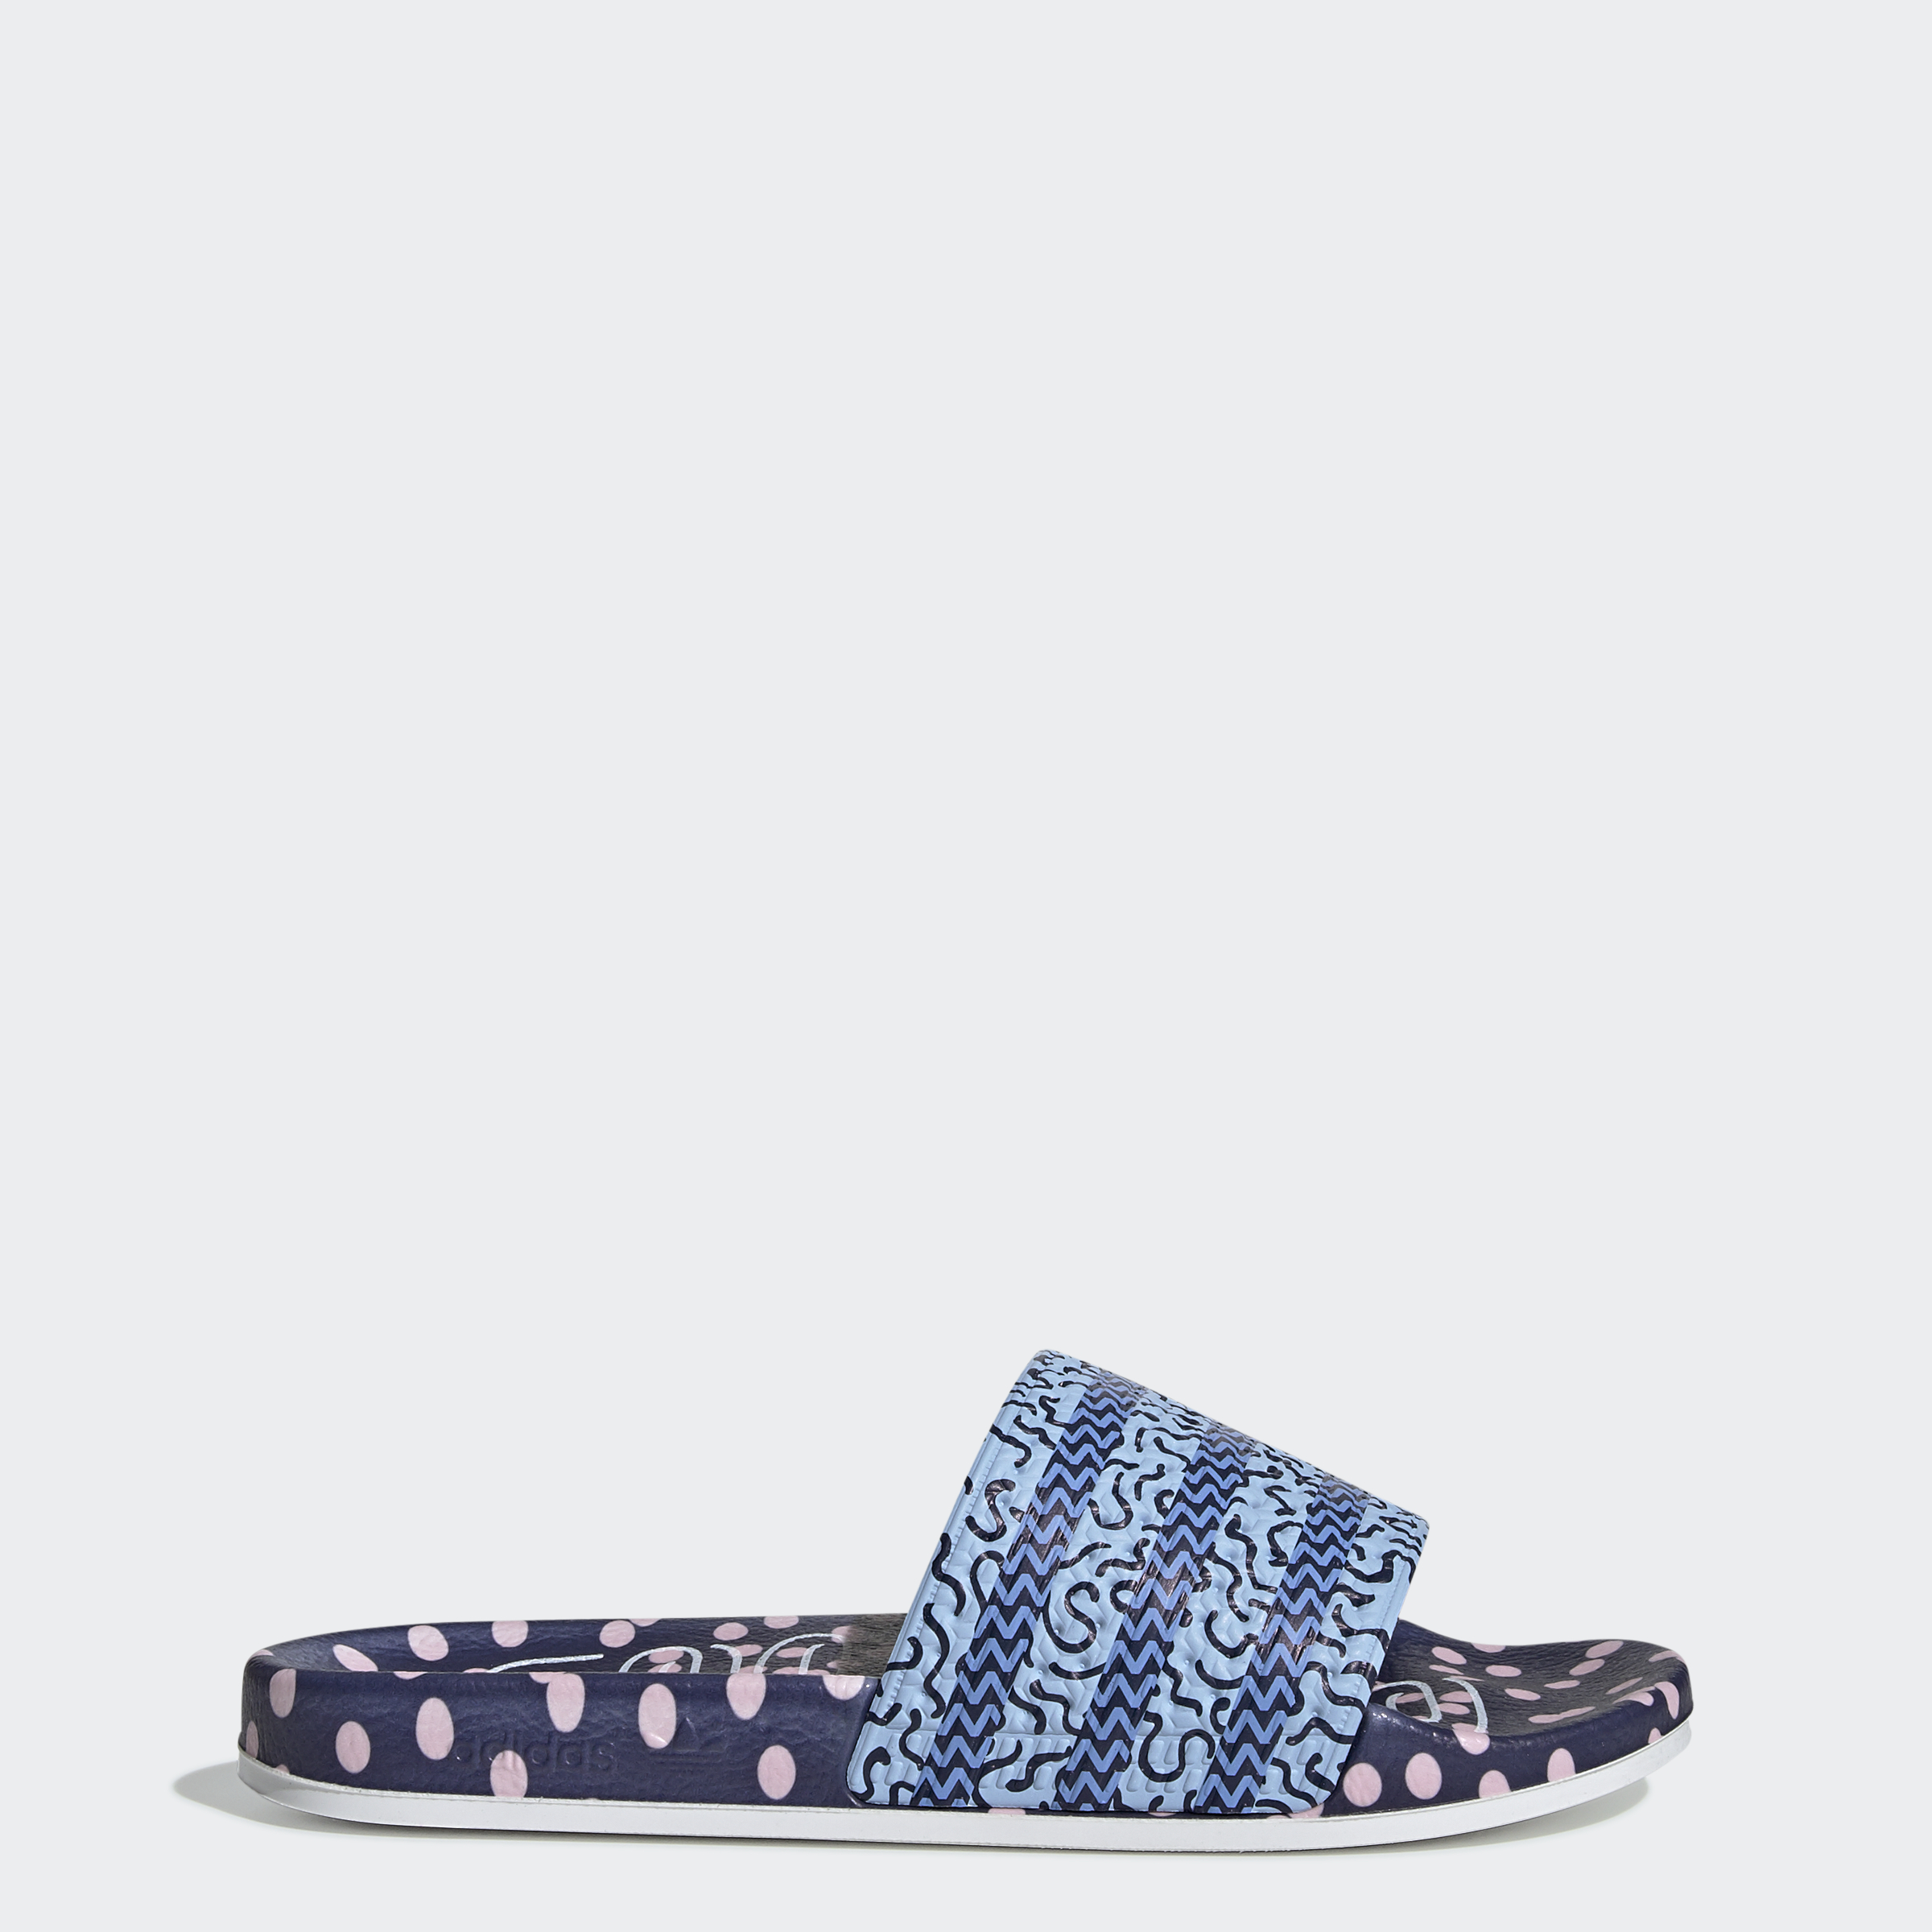 adidas-Originals-Adilette-Slides-Women-039-s thumbnail 46